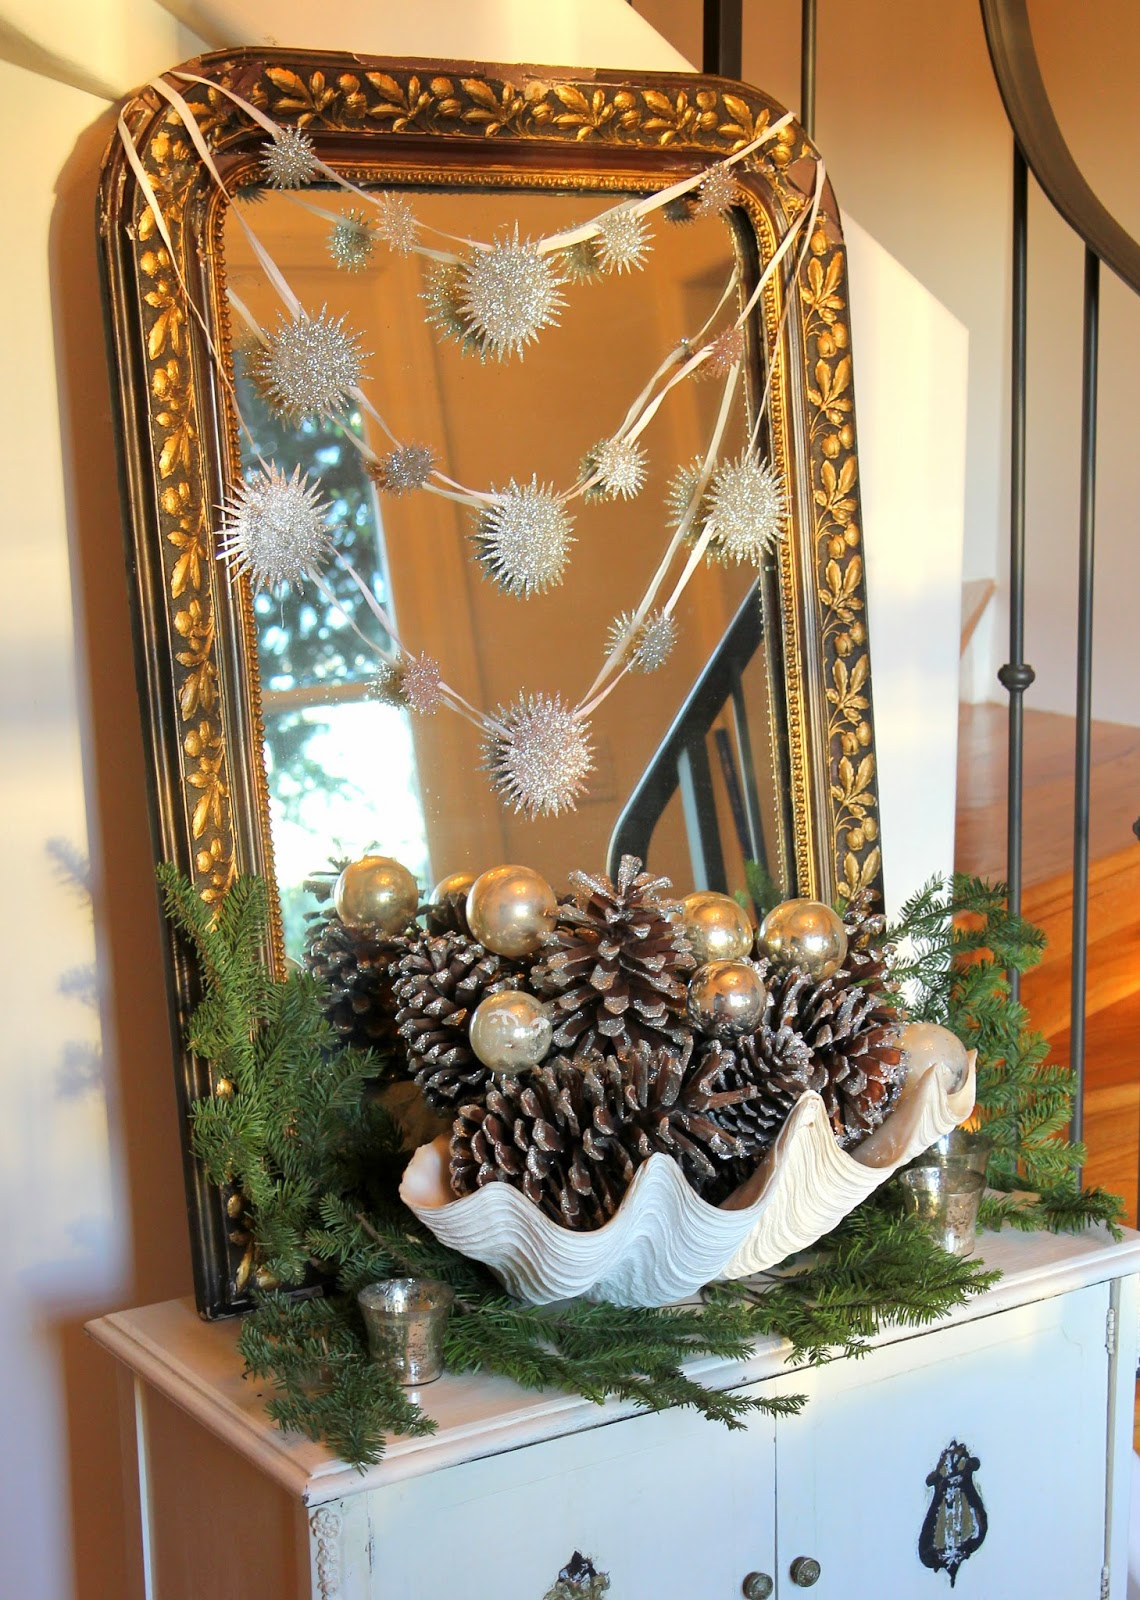 Christmas decoration for a Foyer